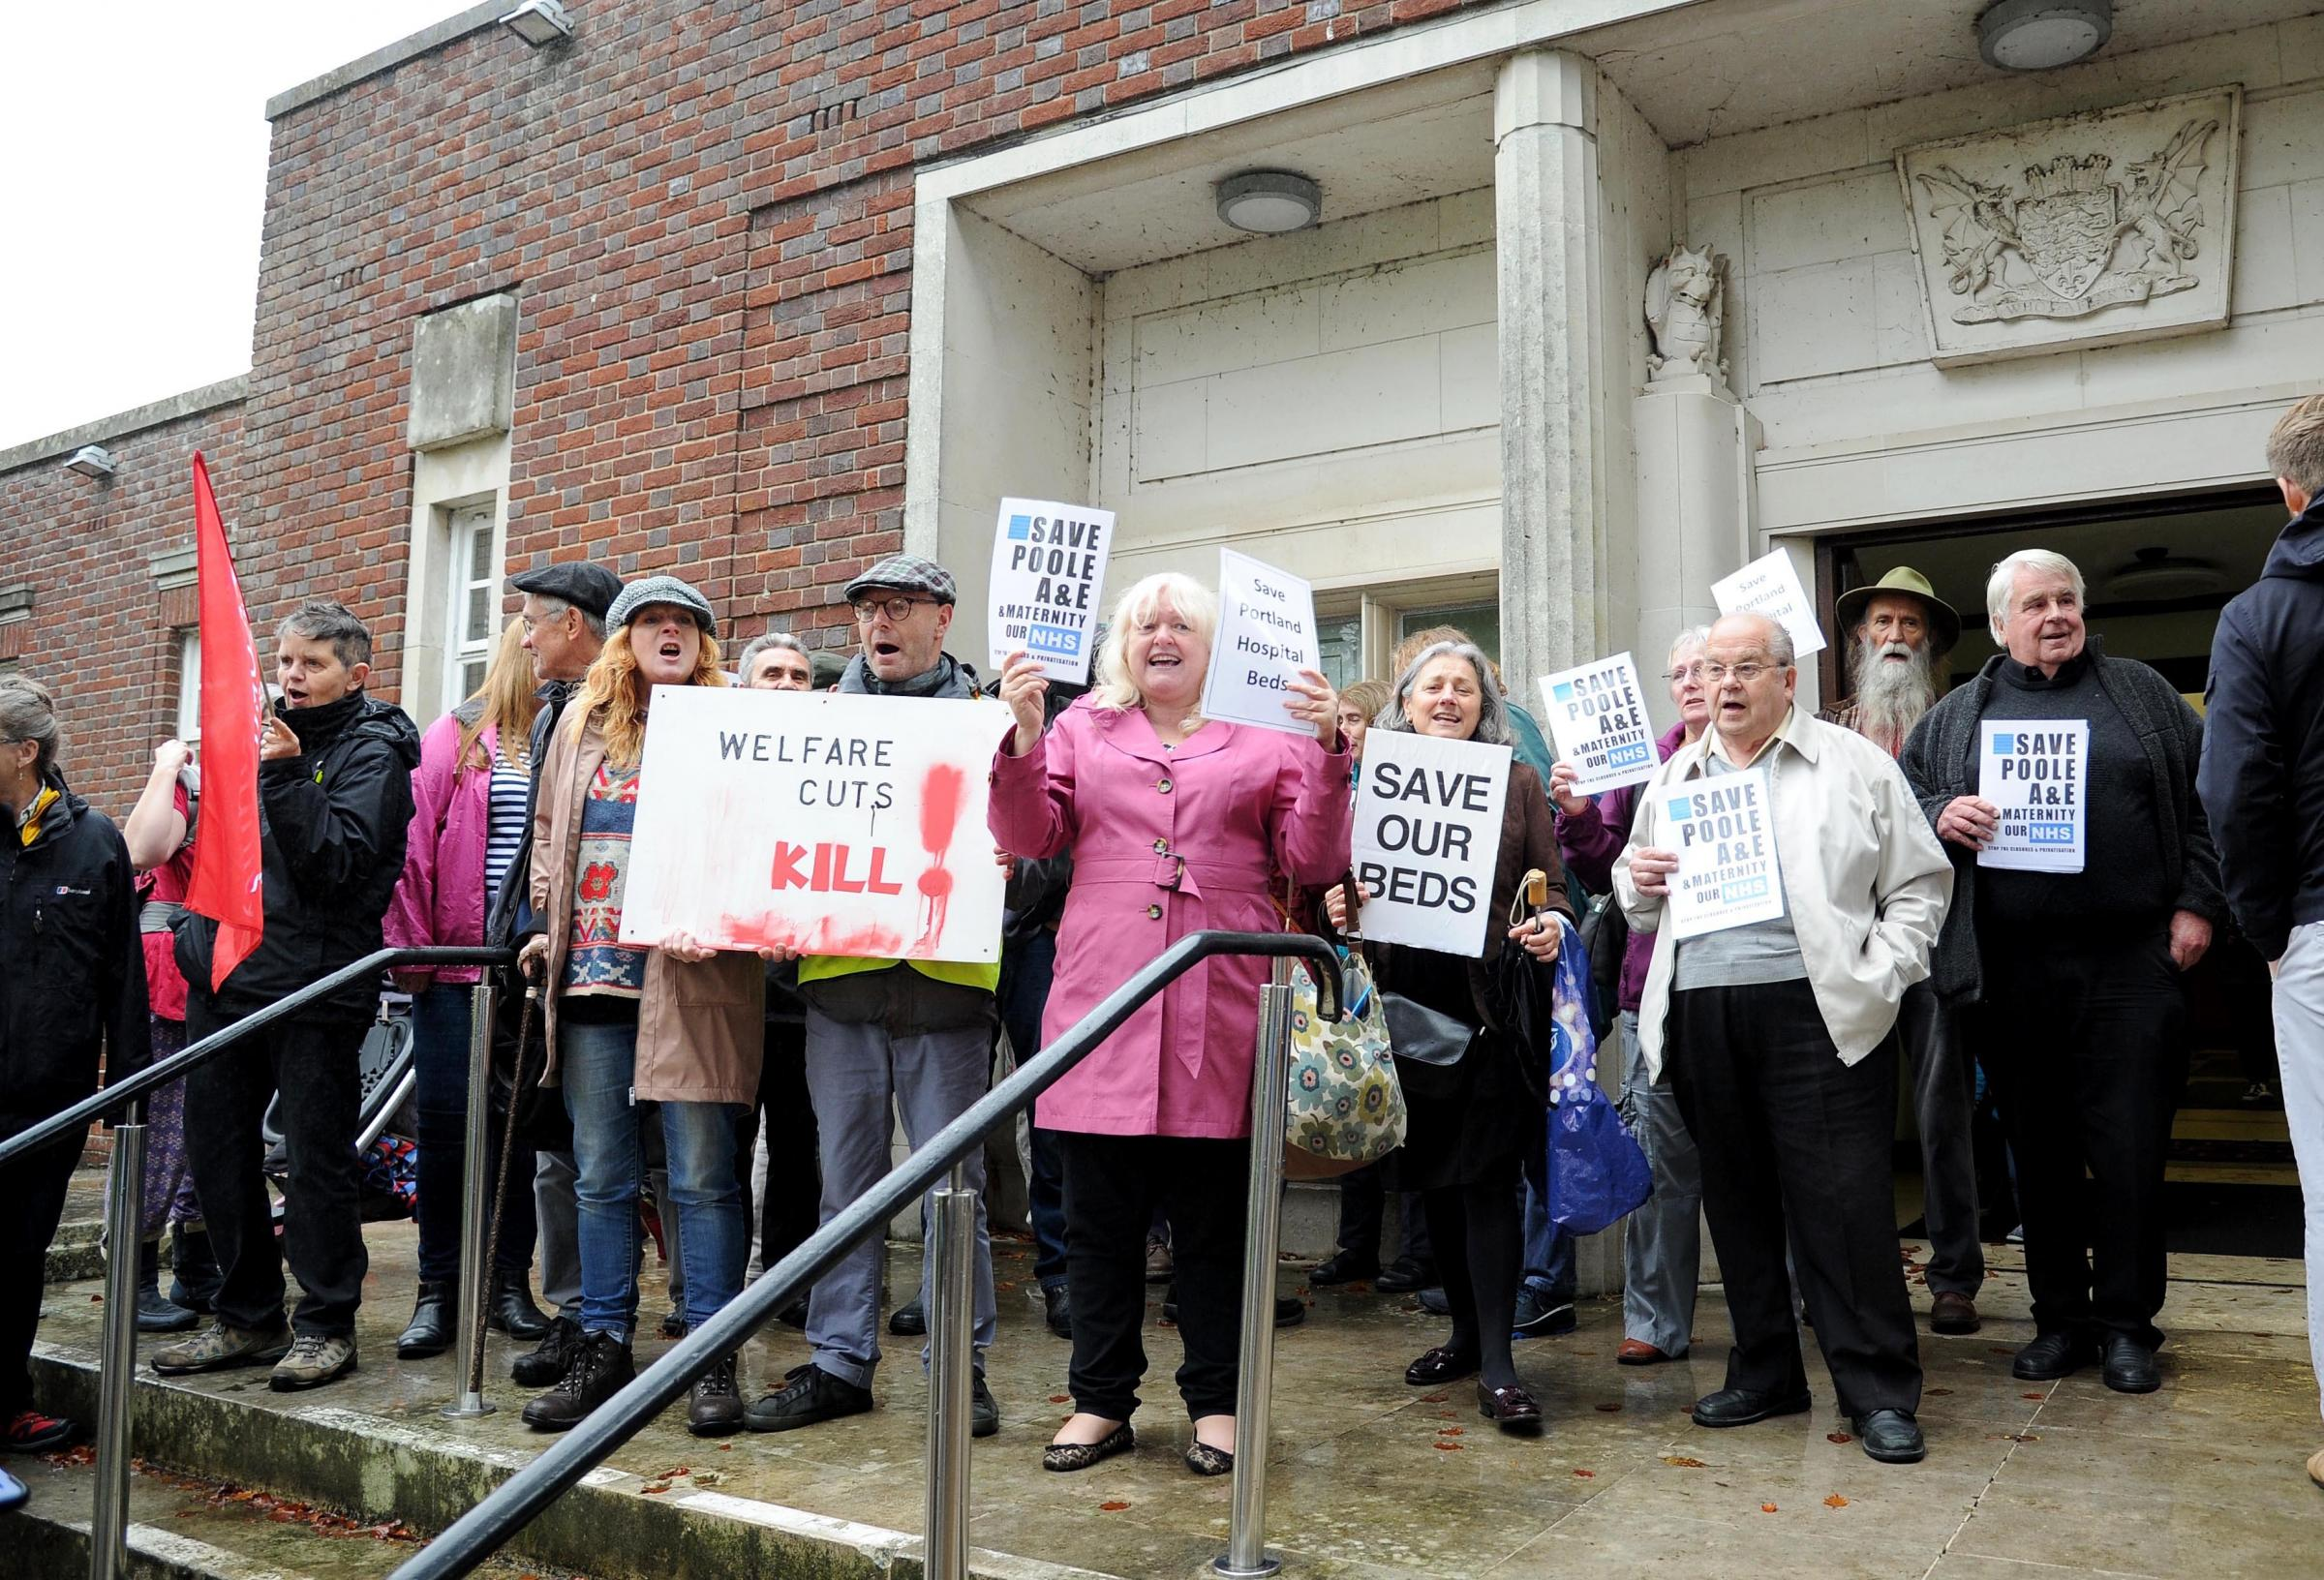 Protesters at County Hall over cuts by Dorset CCG